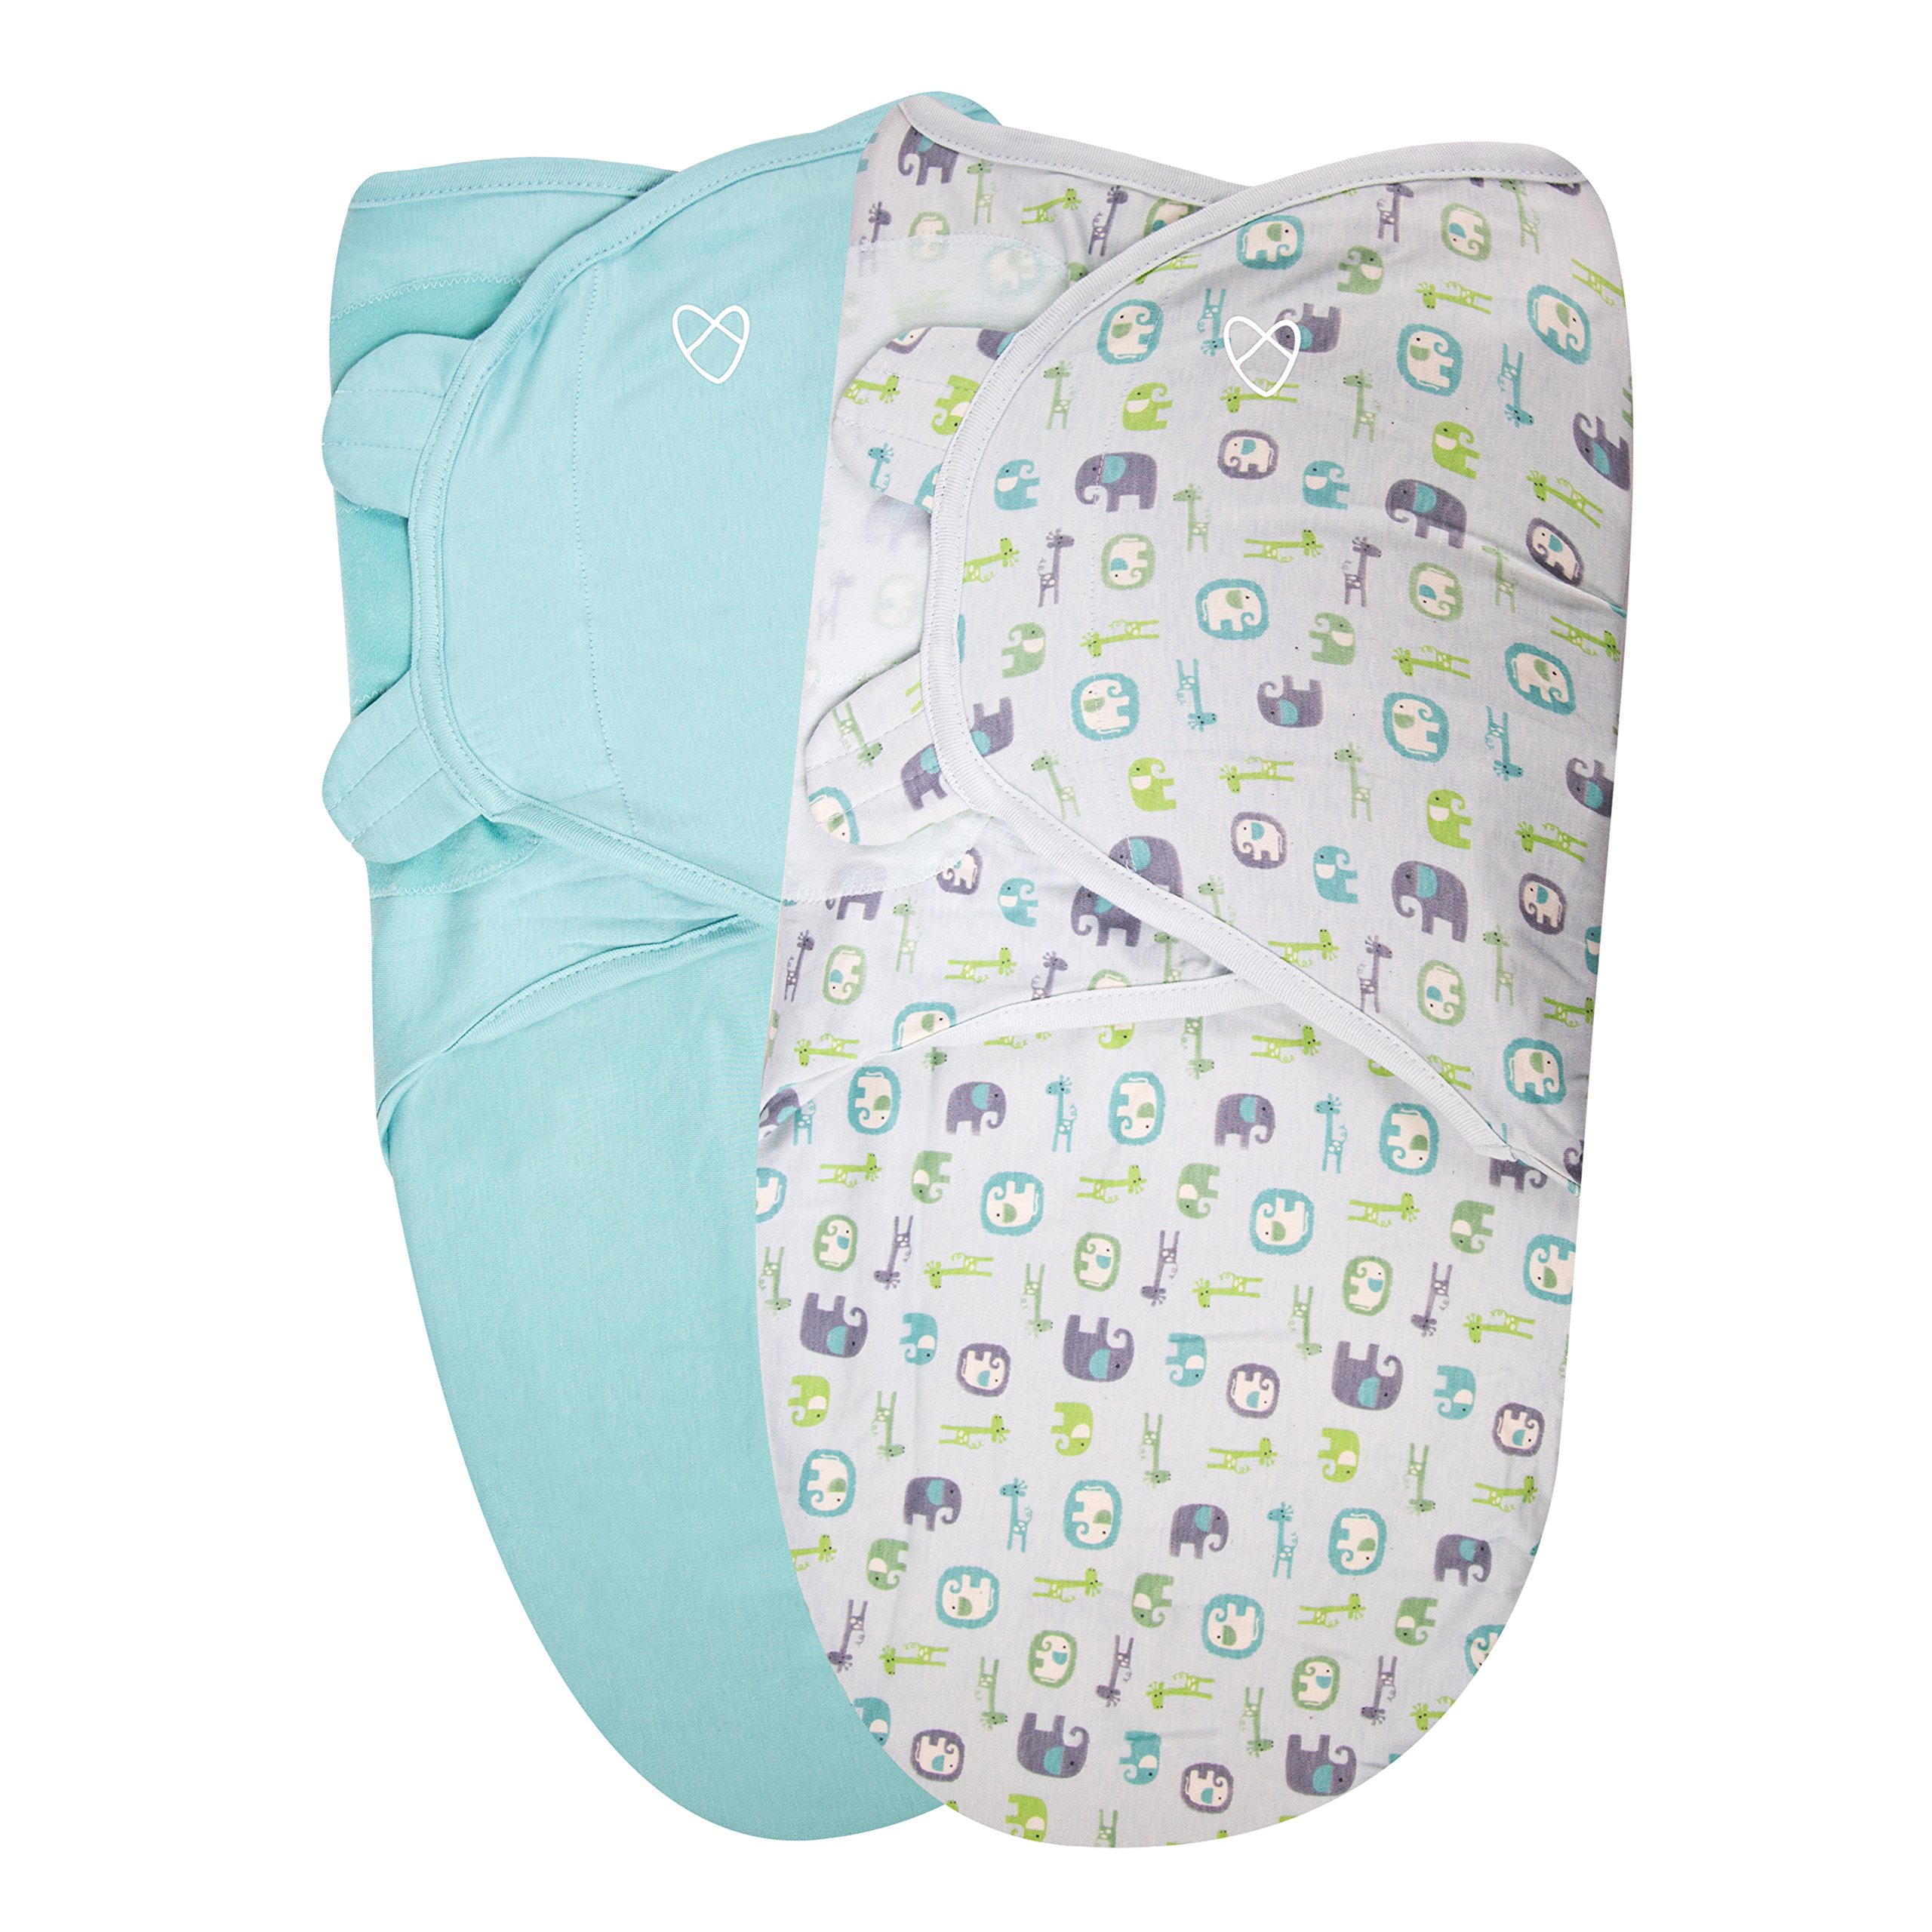 SwaddleMe Original Organic Swaddle 2-PK, Elephant Pebble (LG)